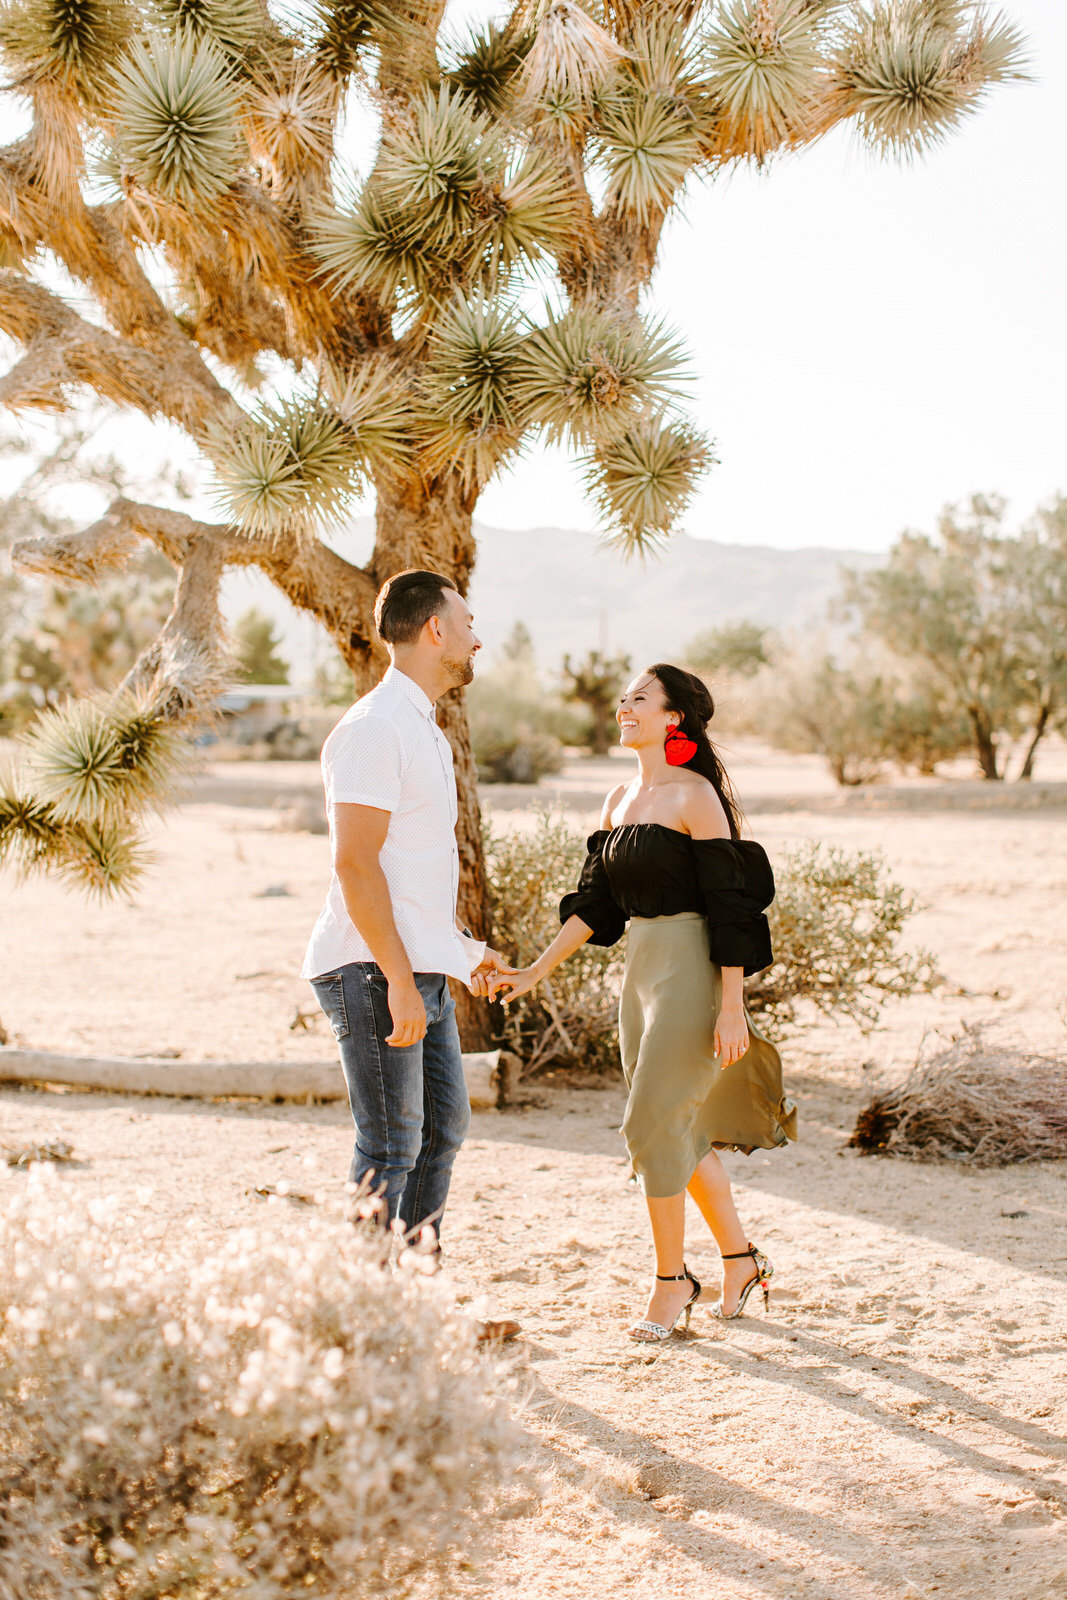 Brianna Broyles_Joshua Tree Wedding Photographer_Joshua Tree Engagement_Palm Springs Wedding_Palm Springs-15